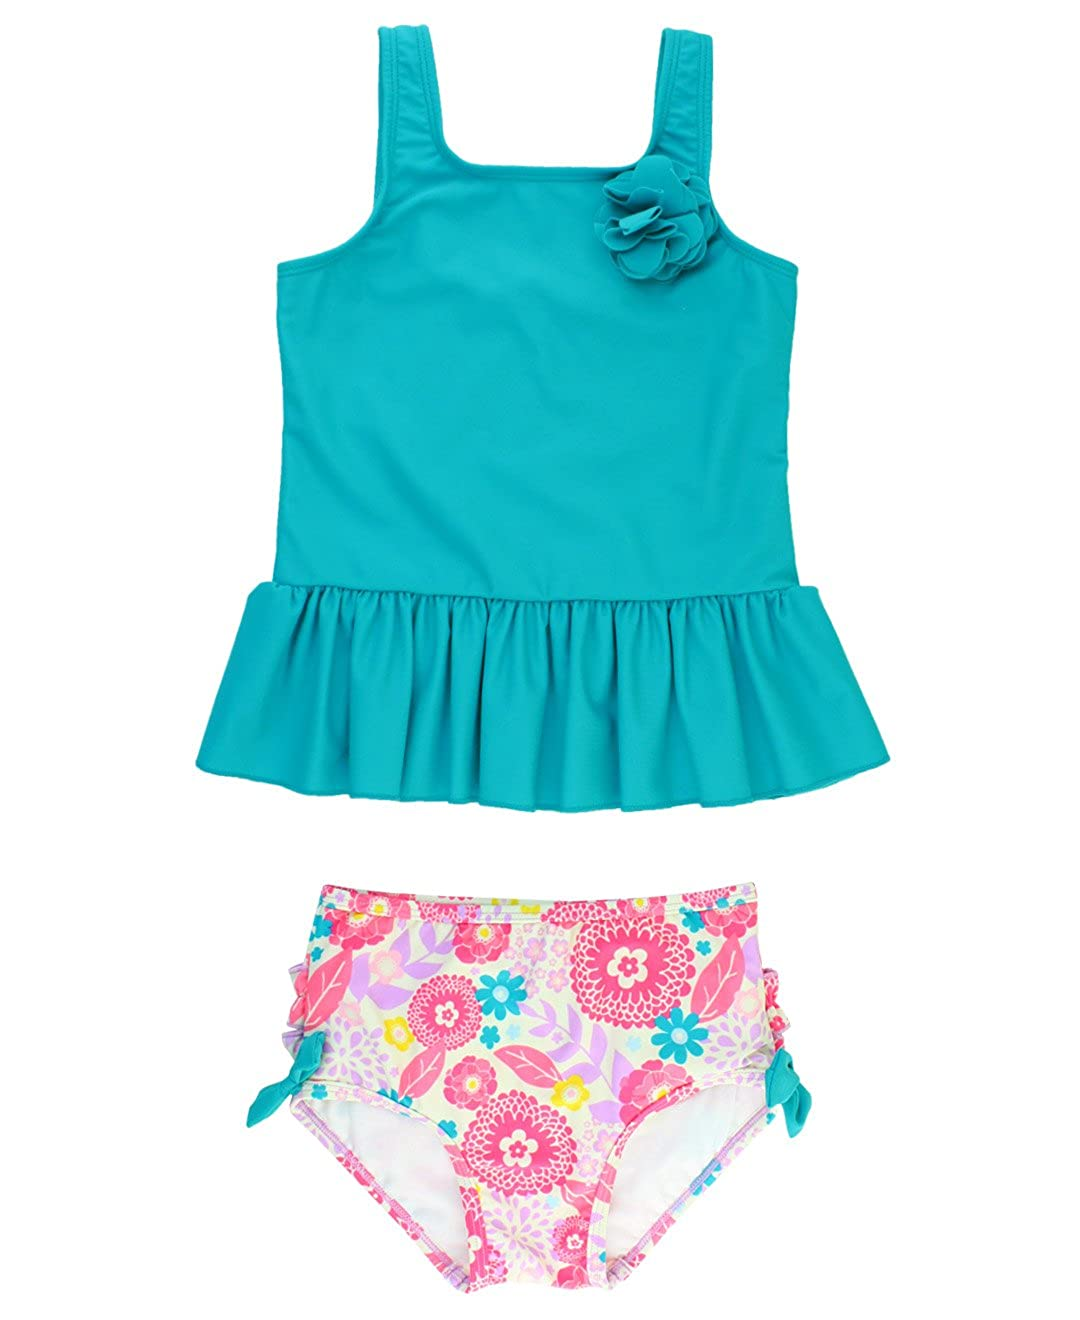 RuffleButts Baby/Toddler Girls 2-Piece Ruffle Peplum Tankini Swimsuit Set SWSYYXX-2PPP-SC-BABY